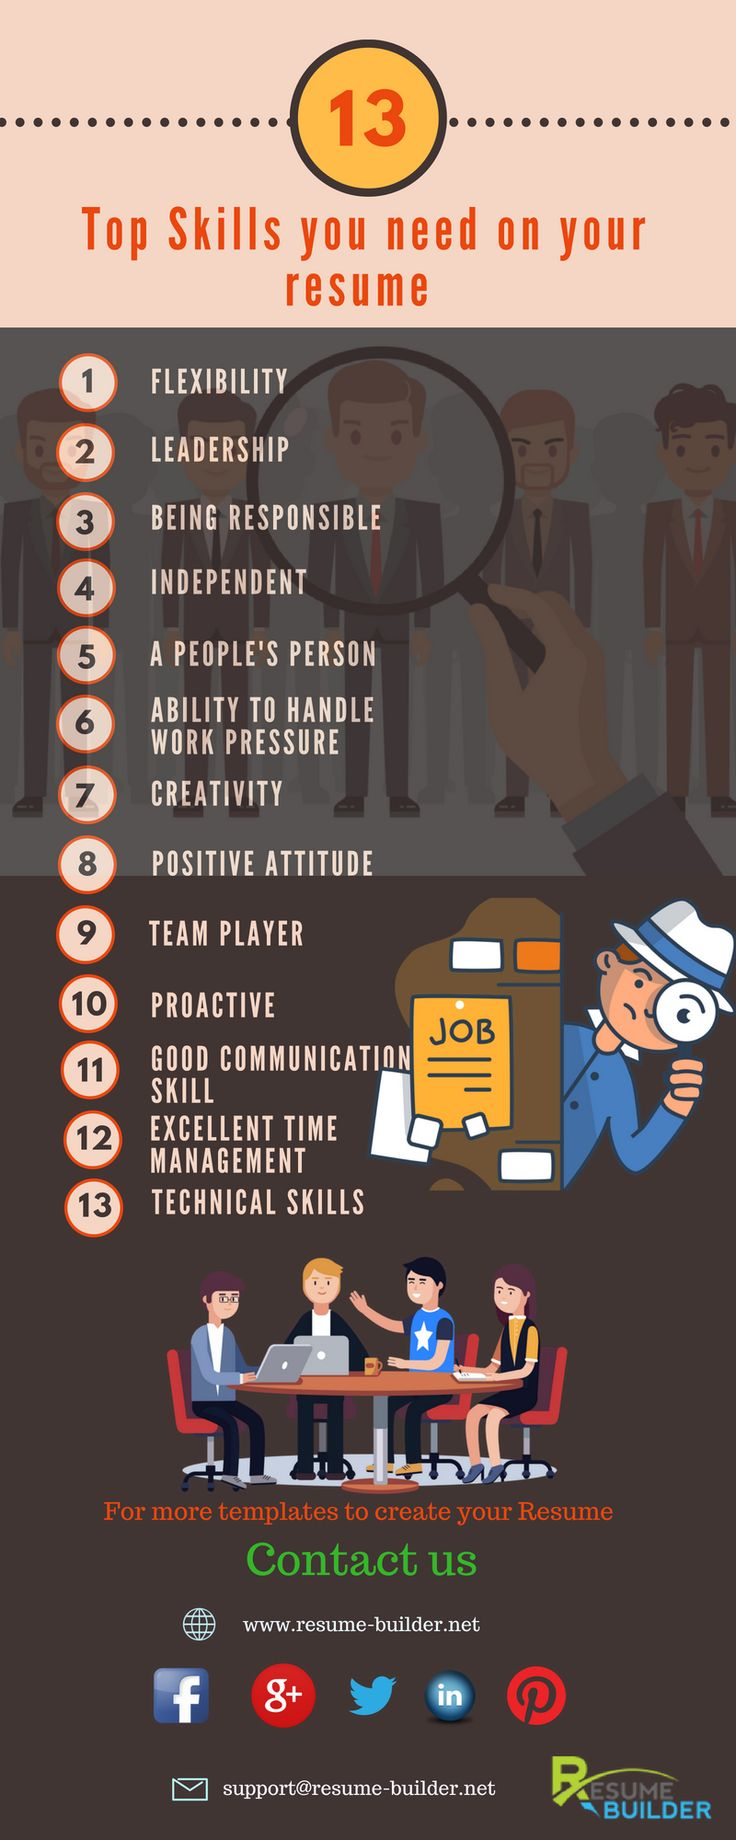 Consider the following skills need to put on your resume